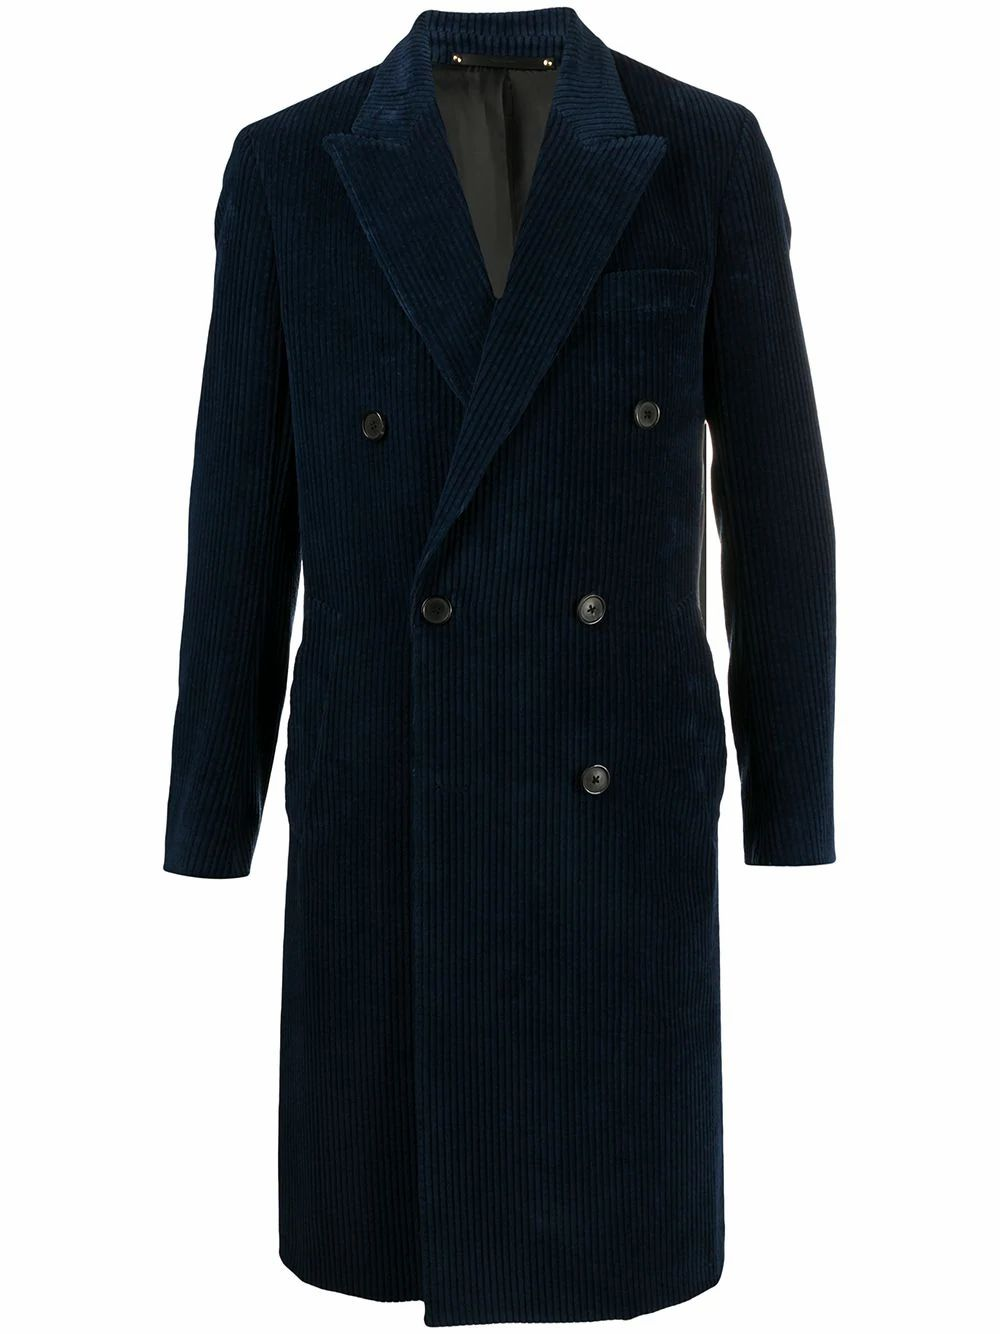 Paul Smith PAUL SMITH MEN'S BLUE COTTON COAT